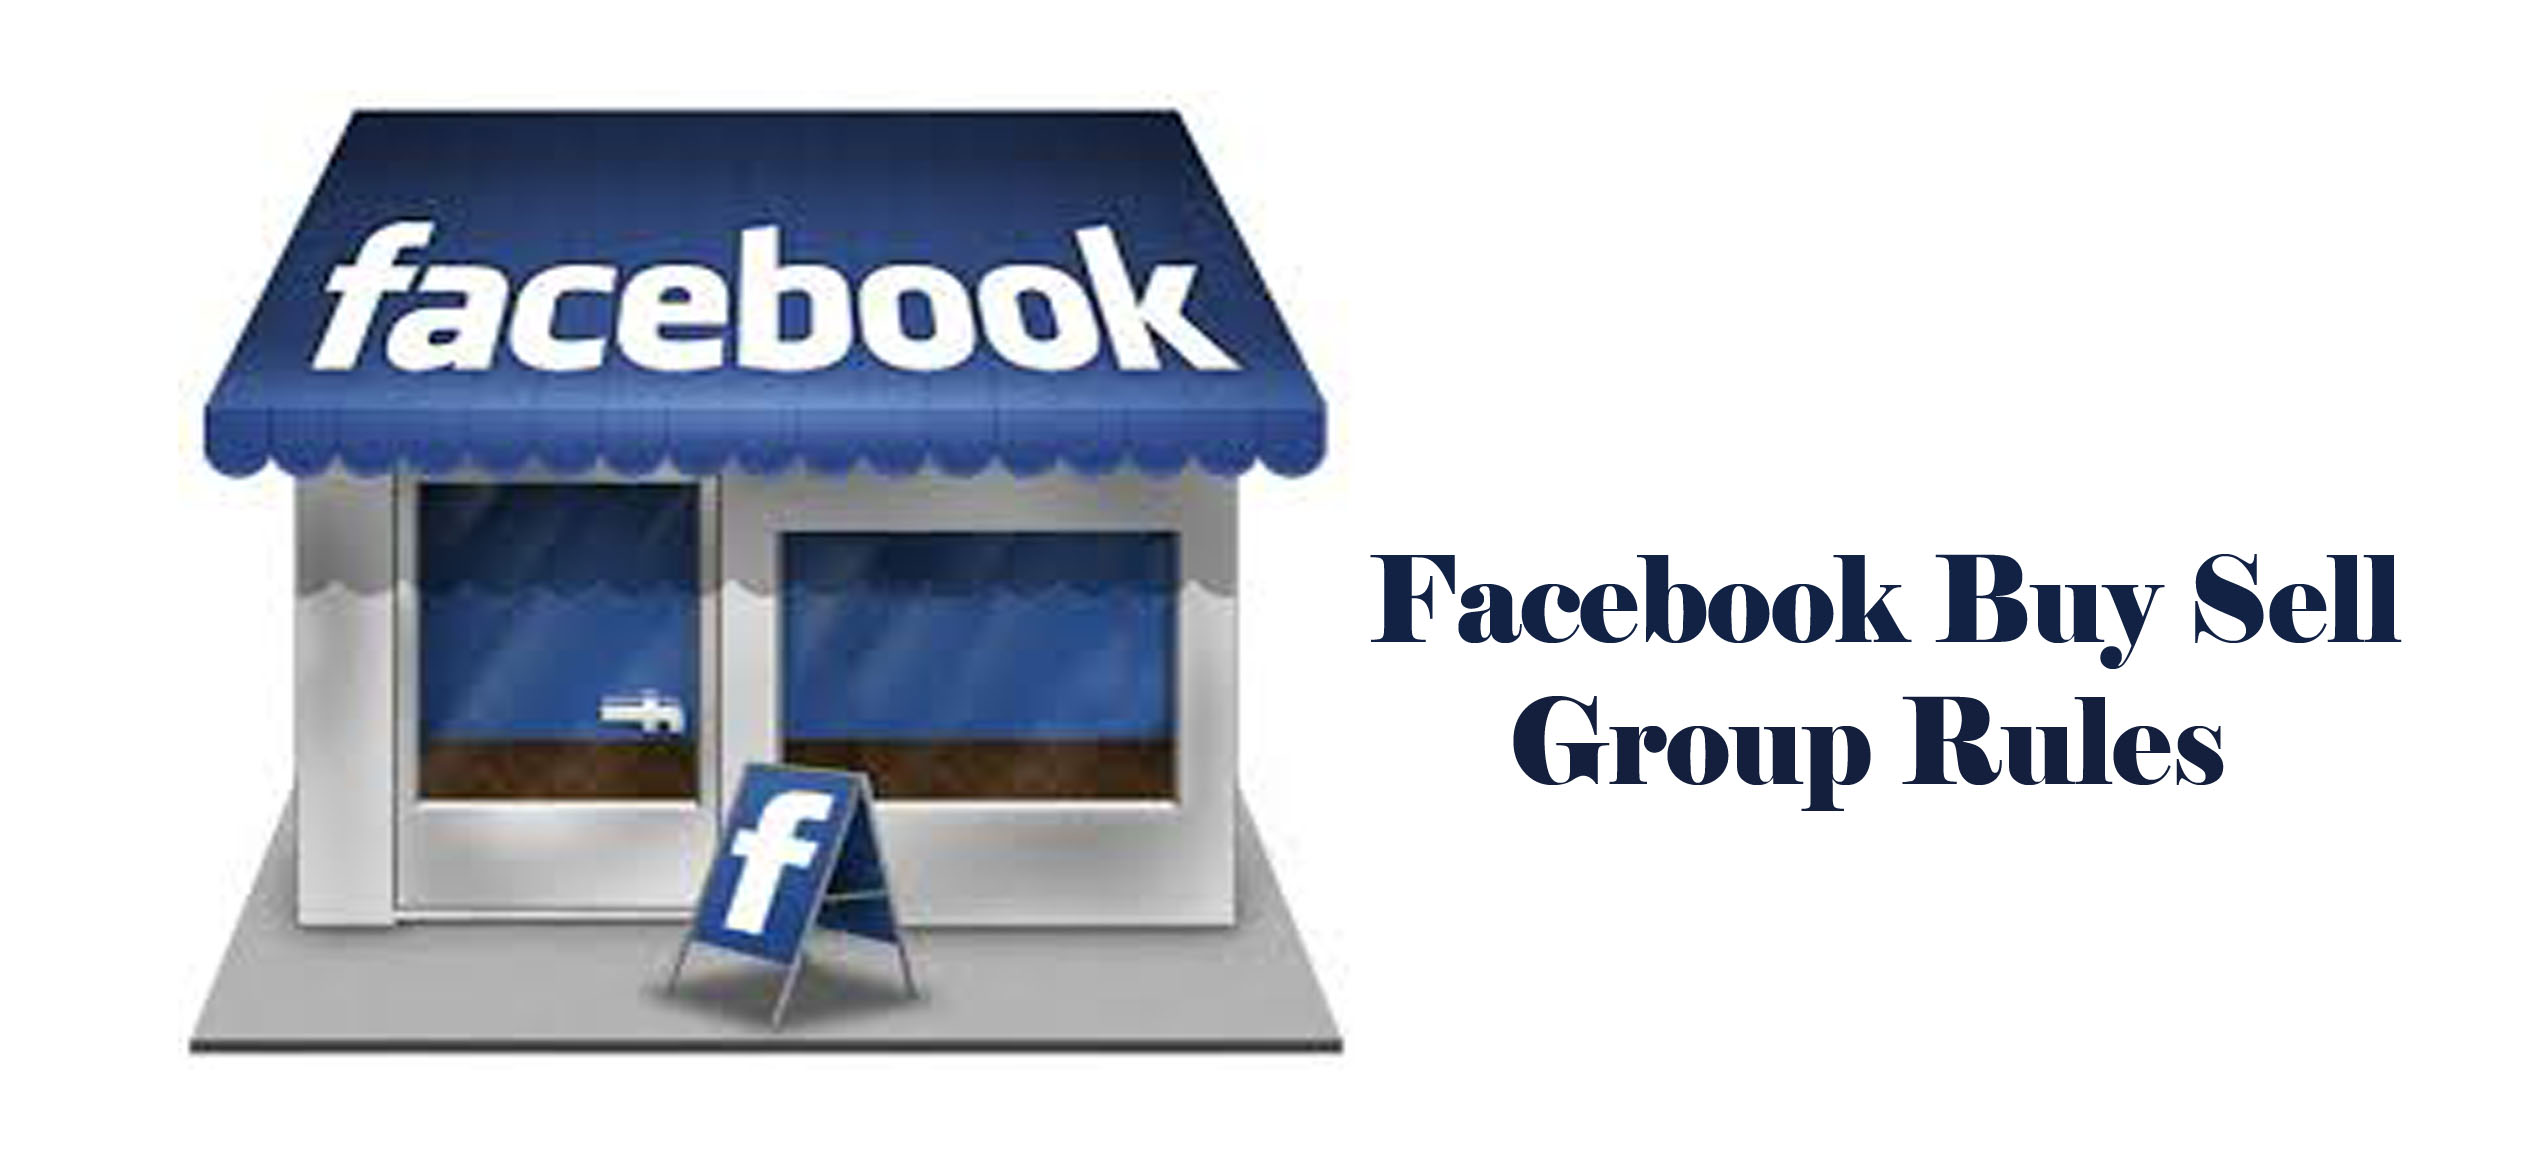 Facebook Buy Sell Group Rules - What You Need to Know to